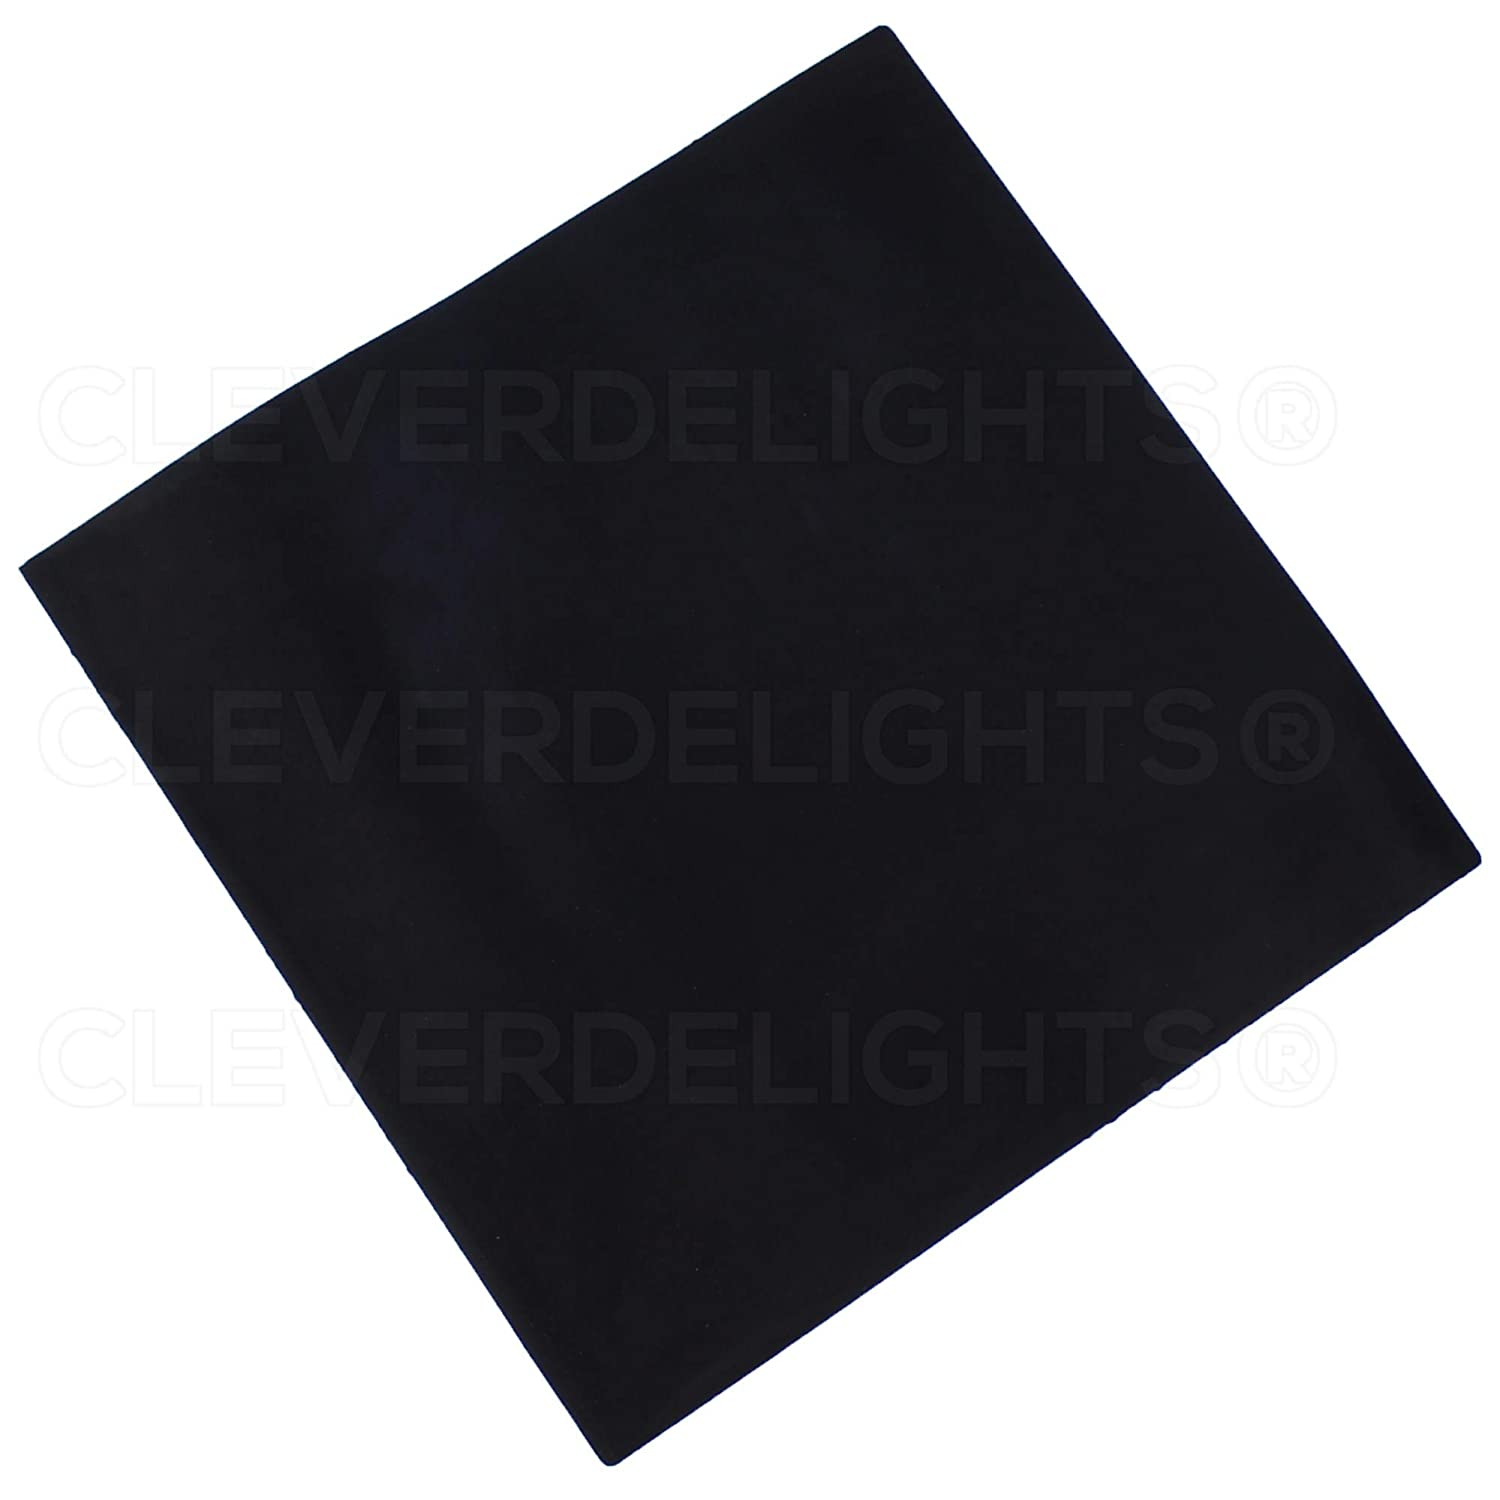 Made in USA 12 Inch Long x 12 Inch Wide x 1//8 Inch Thick Buna N Rubber Sheet...